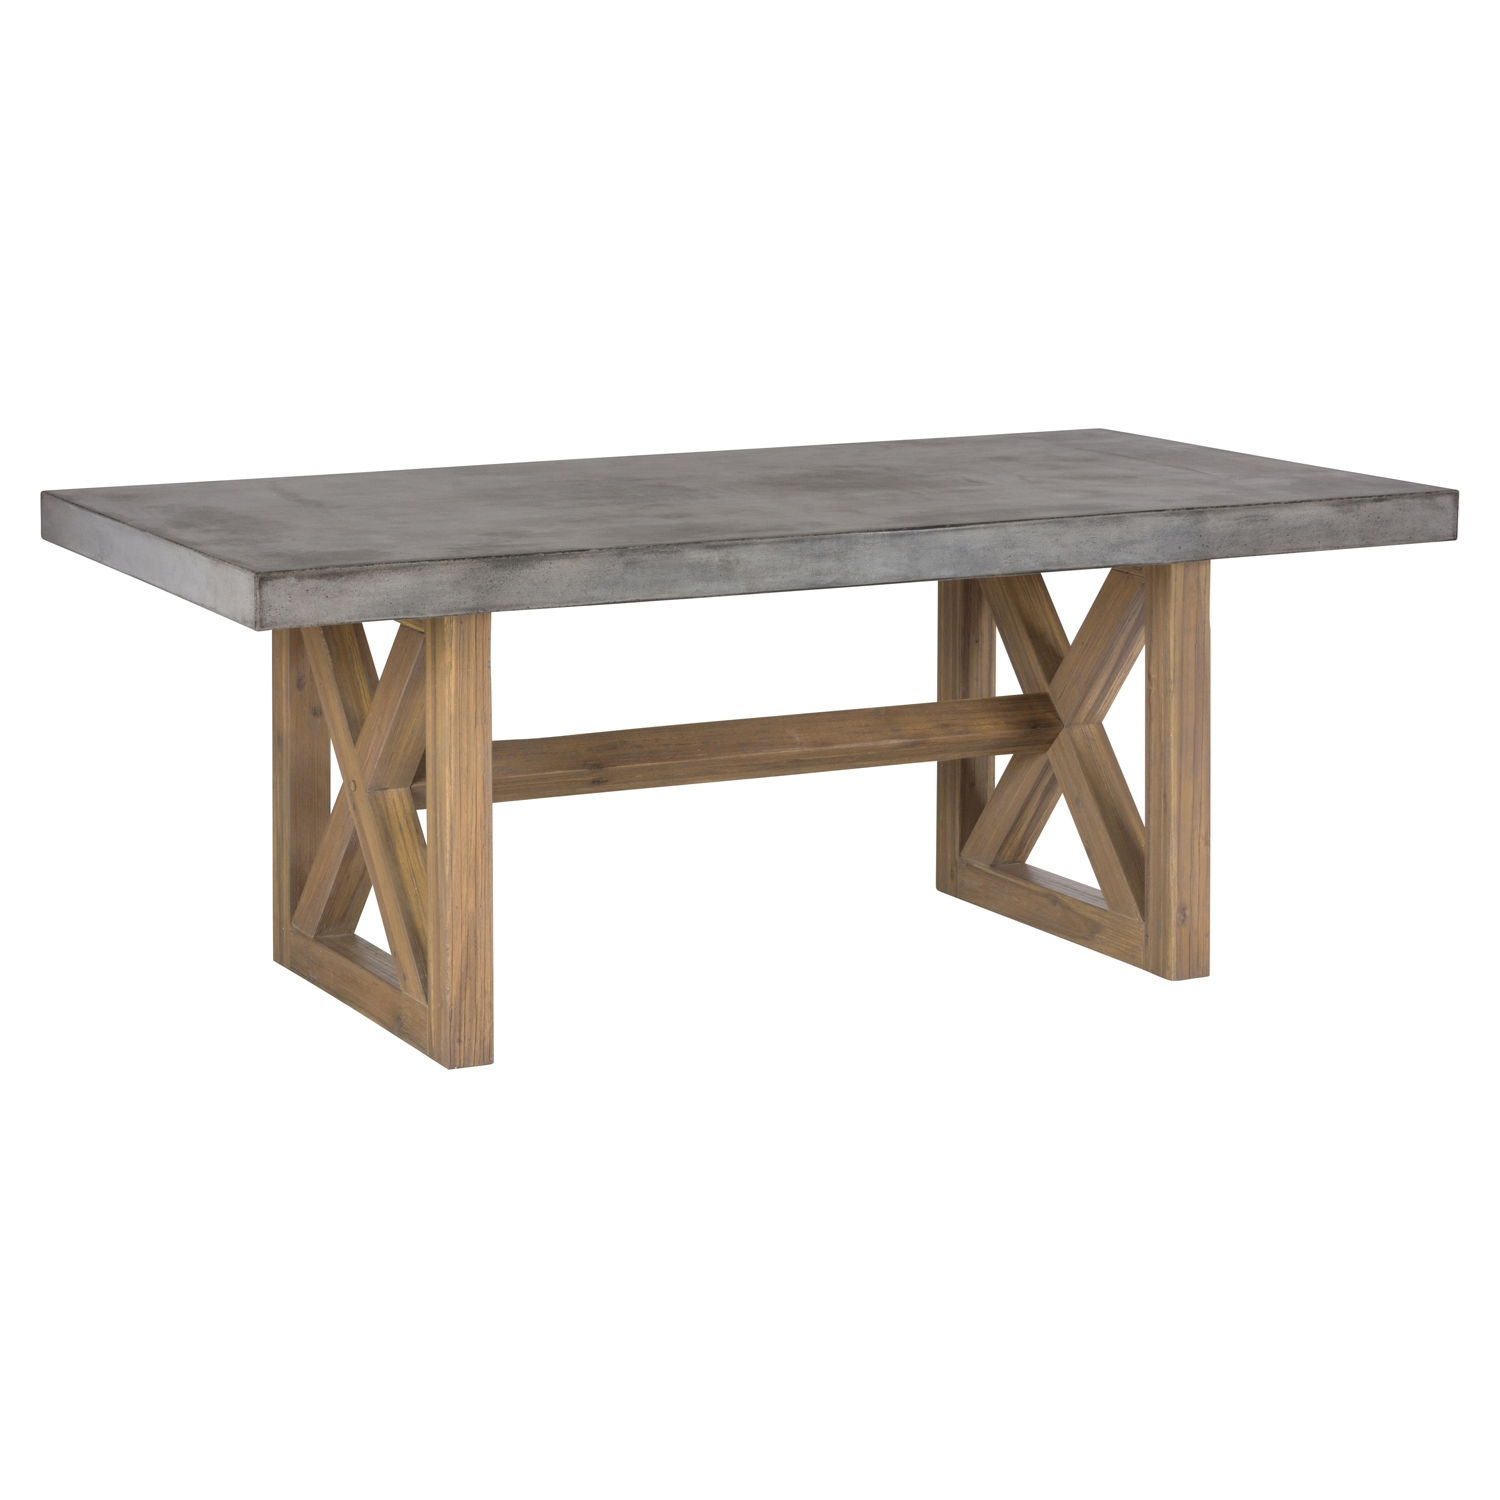 Boulder Ridge Rectangle Dining Table Concrete Top  : 757 78tnbnkt from www.dcgstores.com size 1000 x 1000 jpeg 145kB